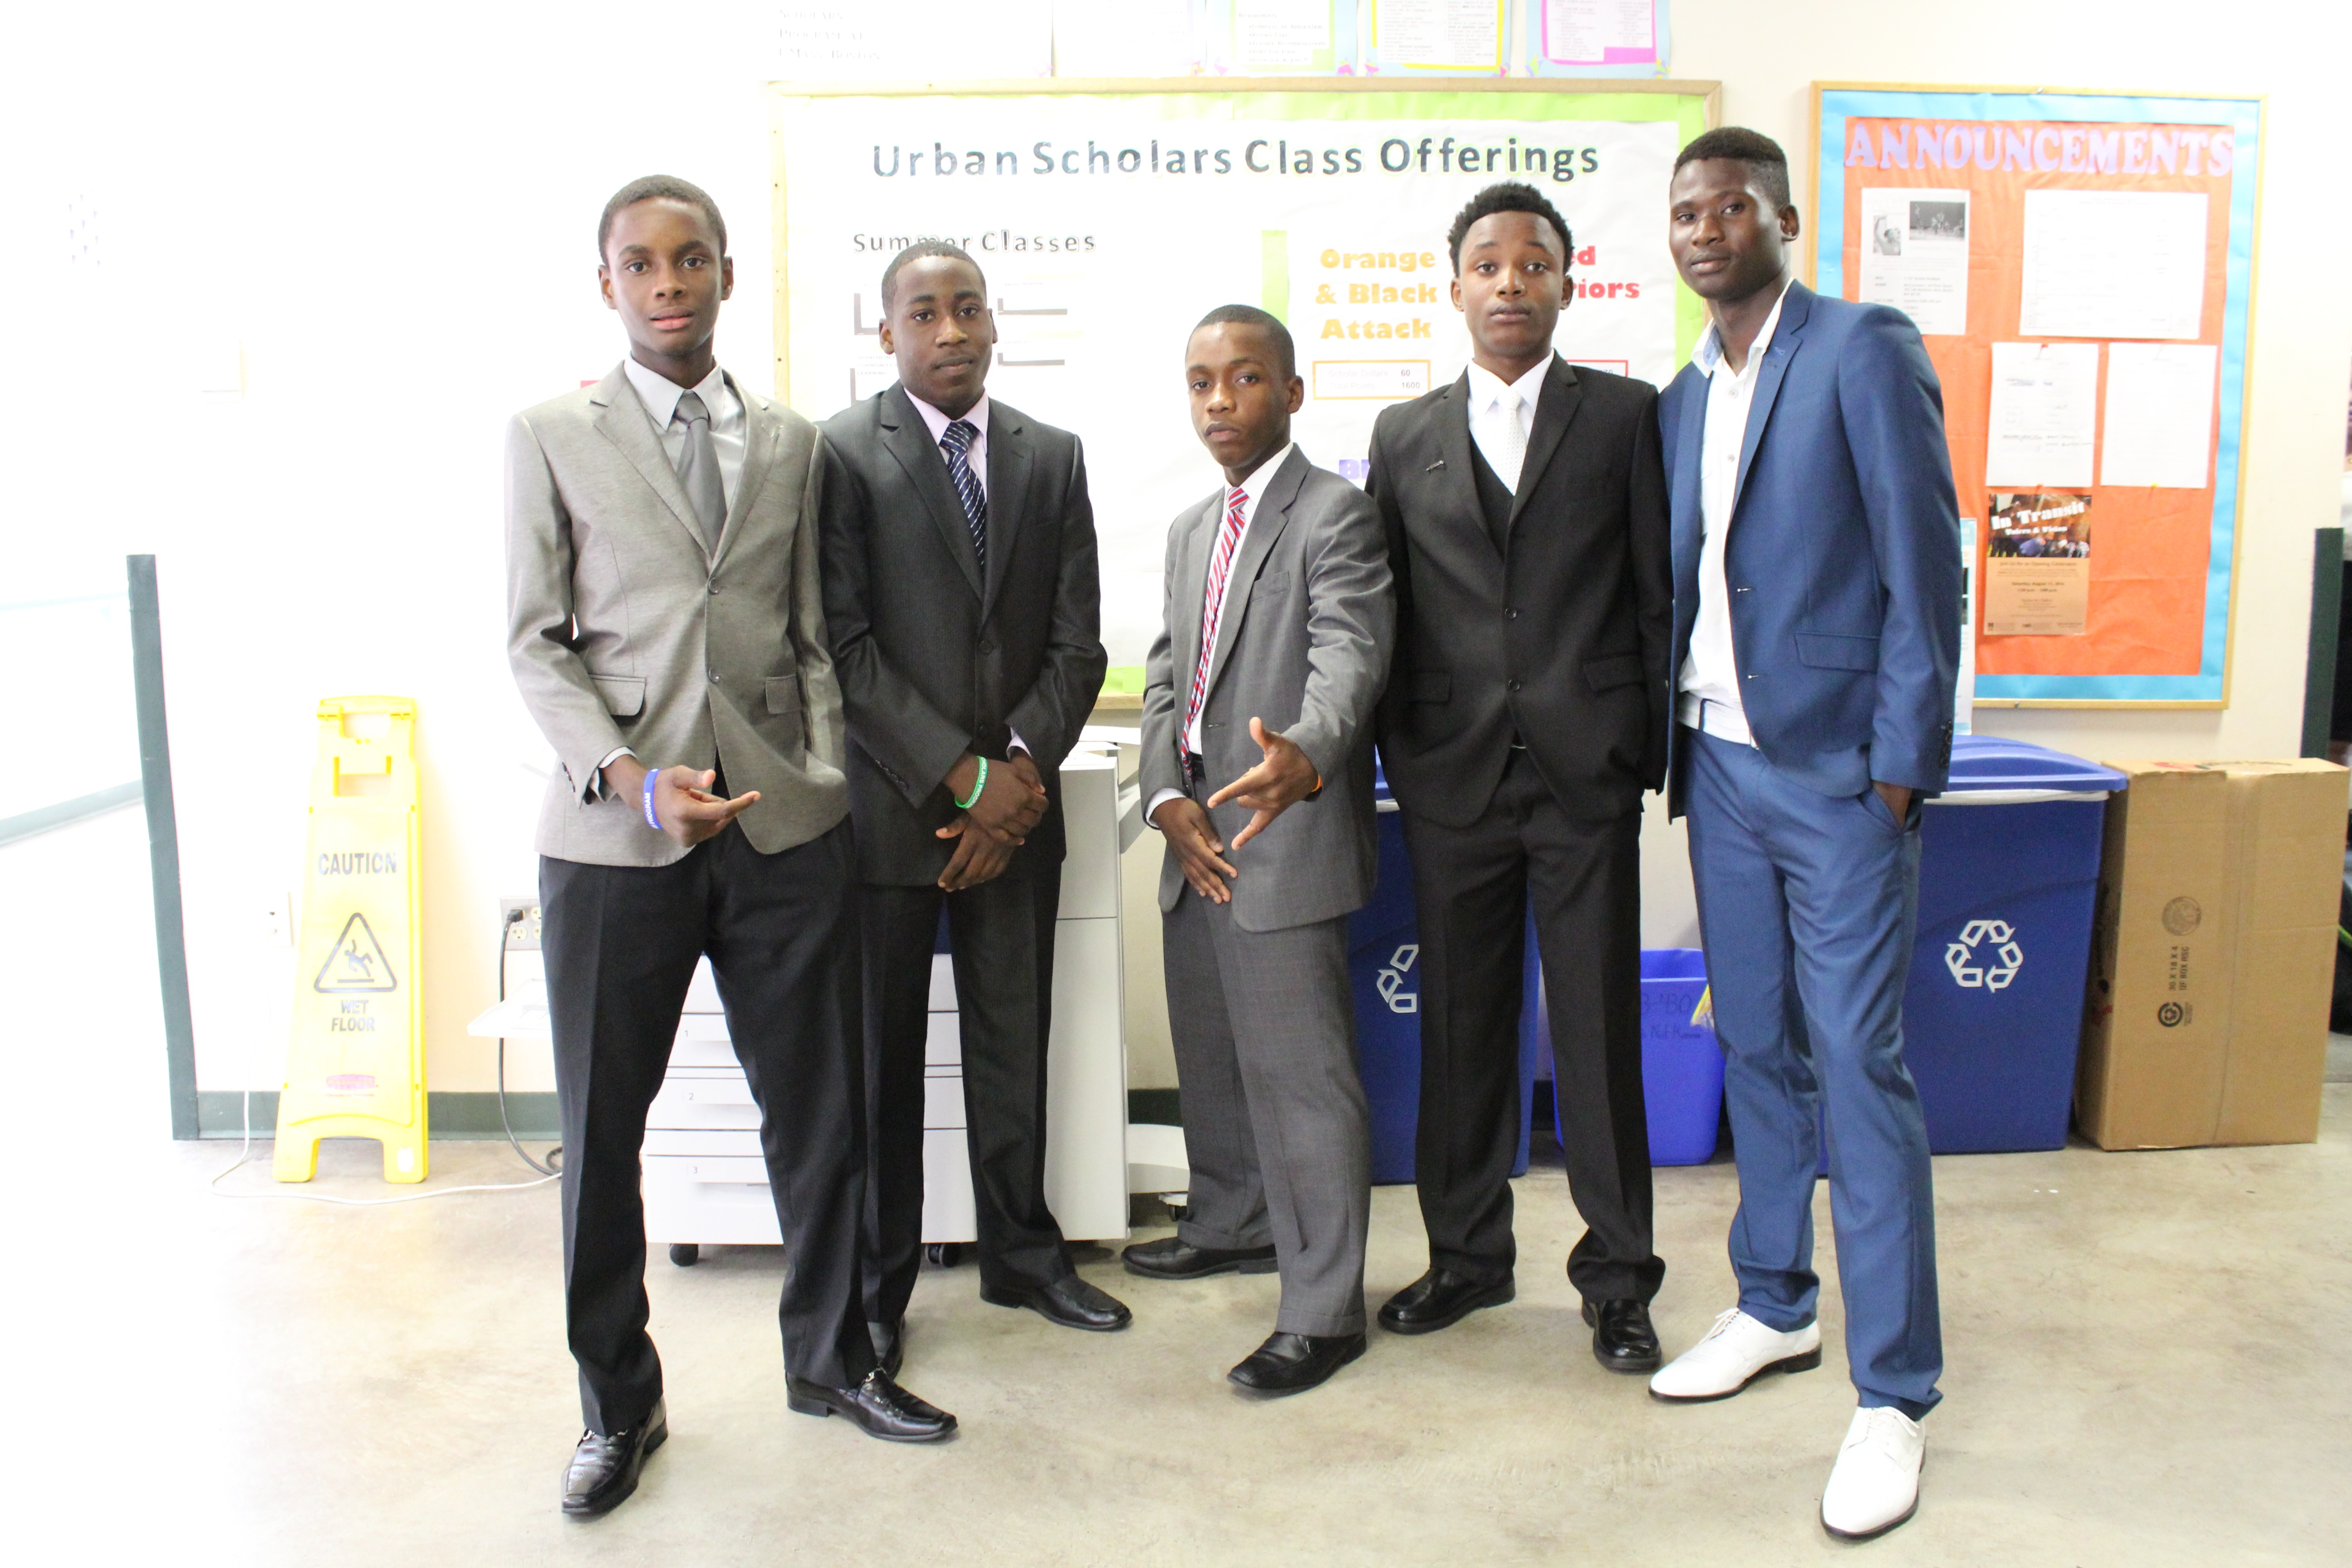 These boys posed for the camera looking very spiffy!